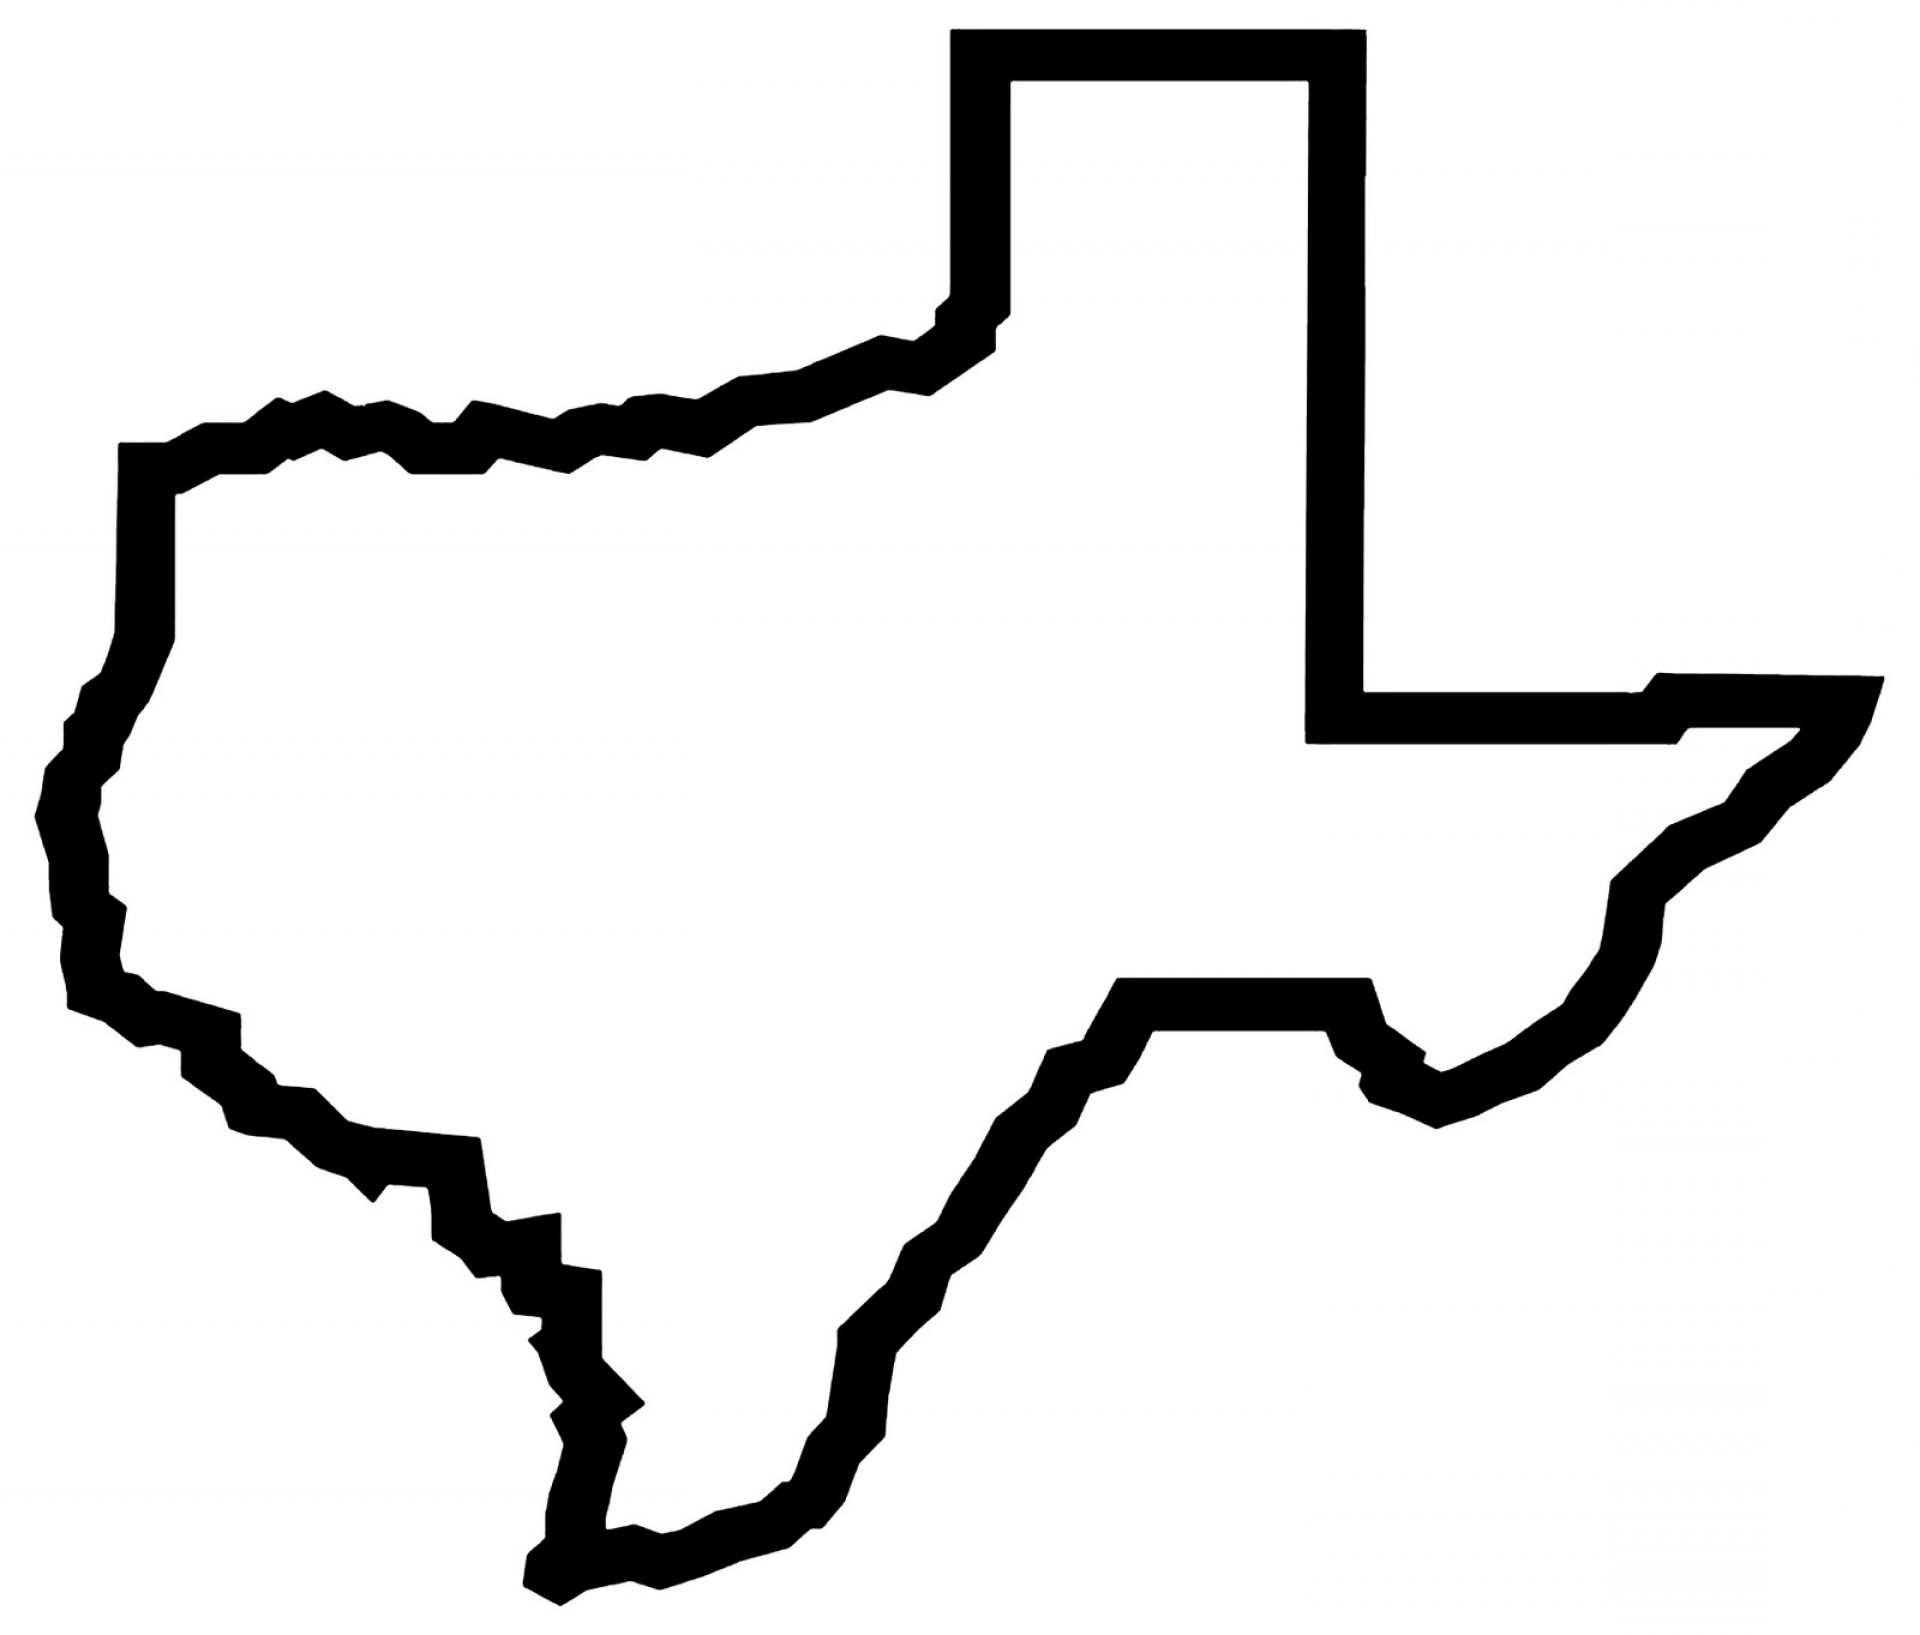 1920x1635 Exclusive State Of Texas Vector Graphics Design Vectorealy Clip